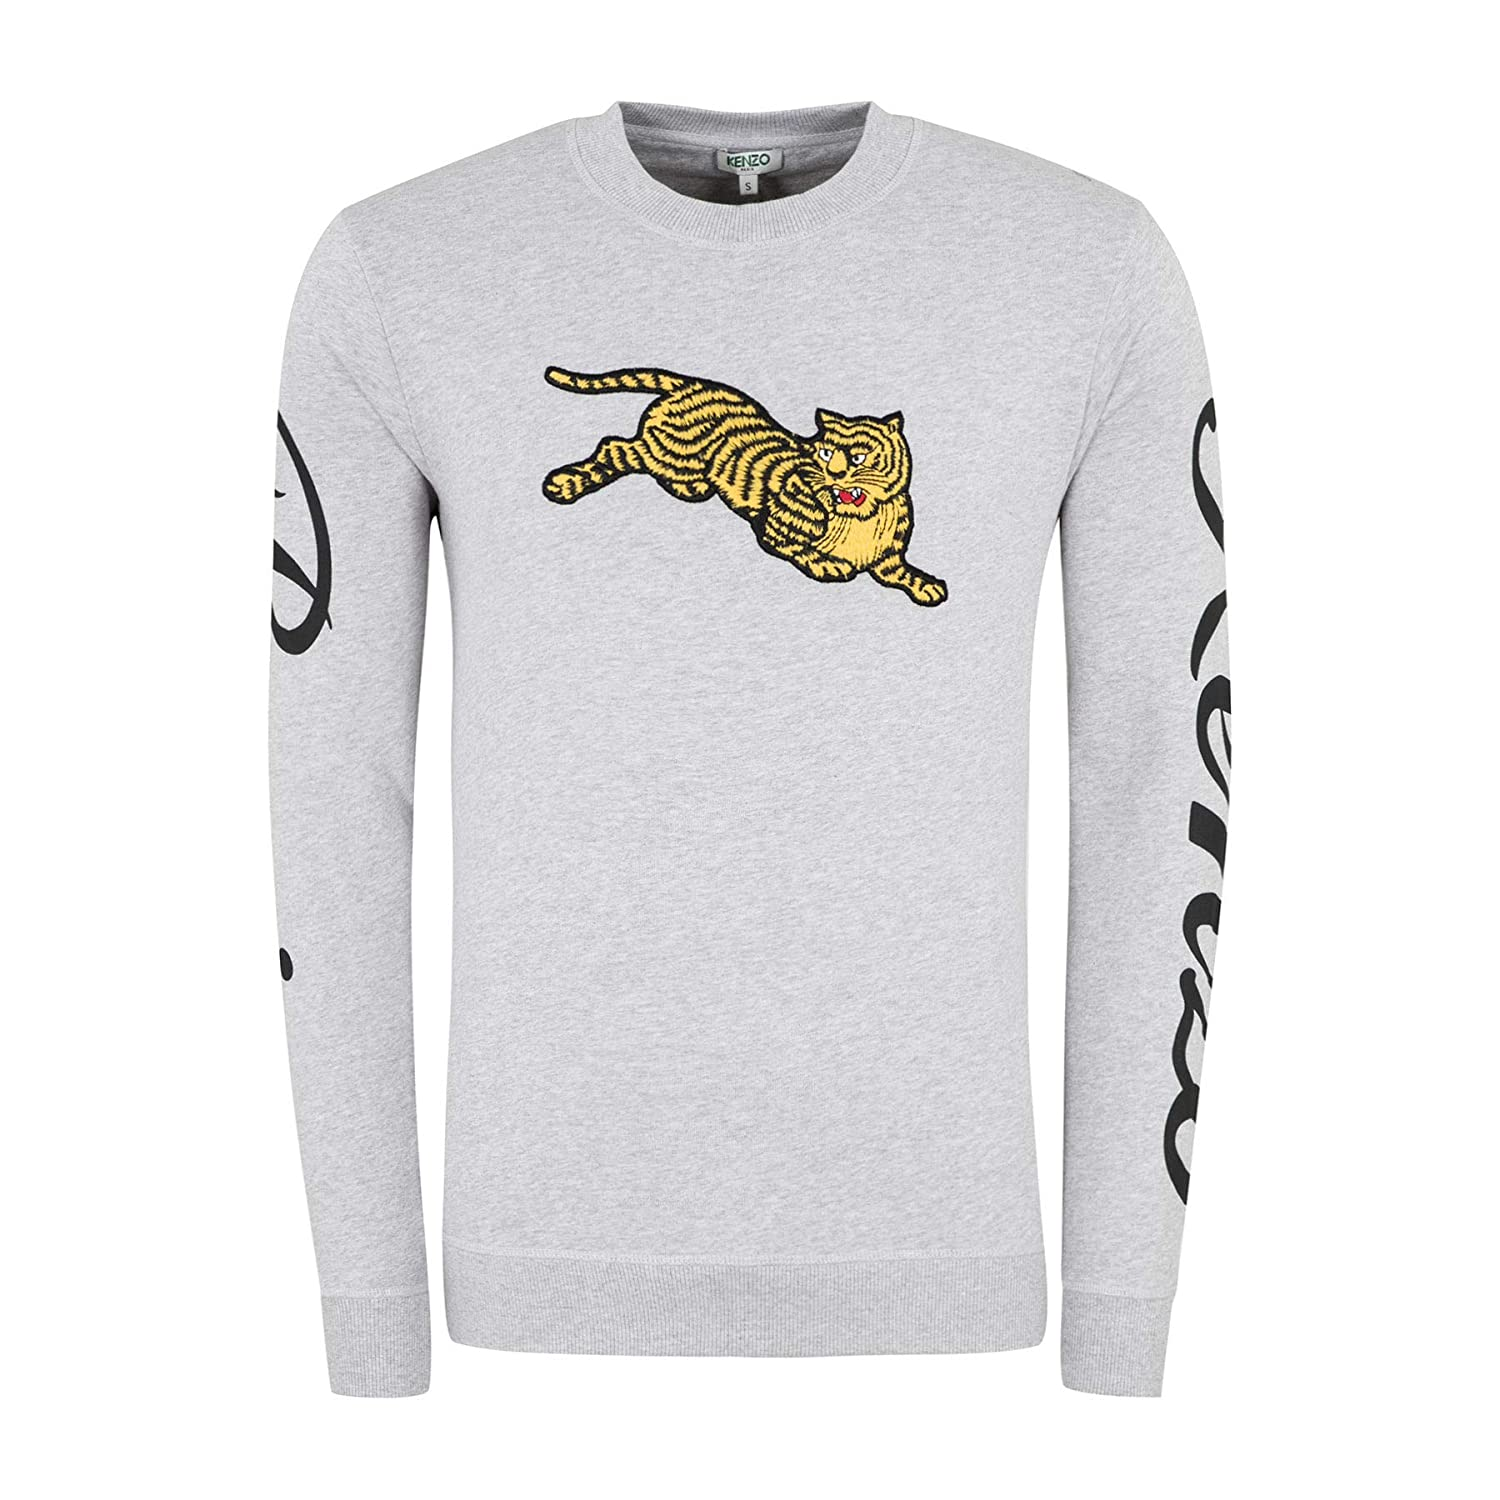 9dc95a5ed4d8 Kenzo Men's Pearl Grey Jumping Tiger Sweatshirt at Amazon Men's Clothing  store: